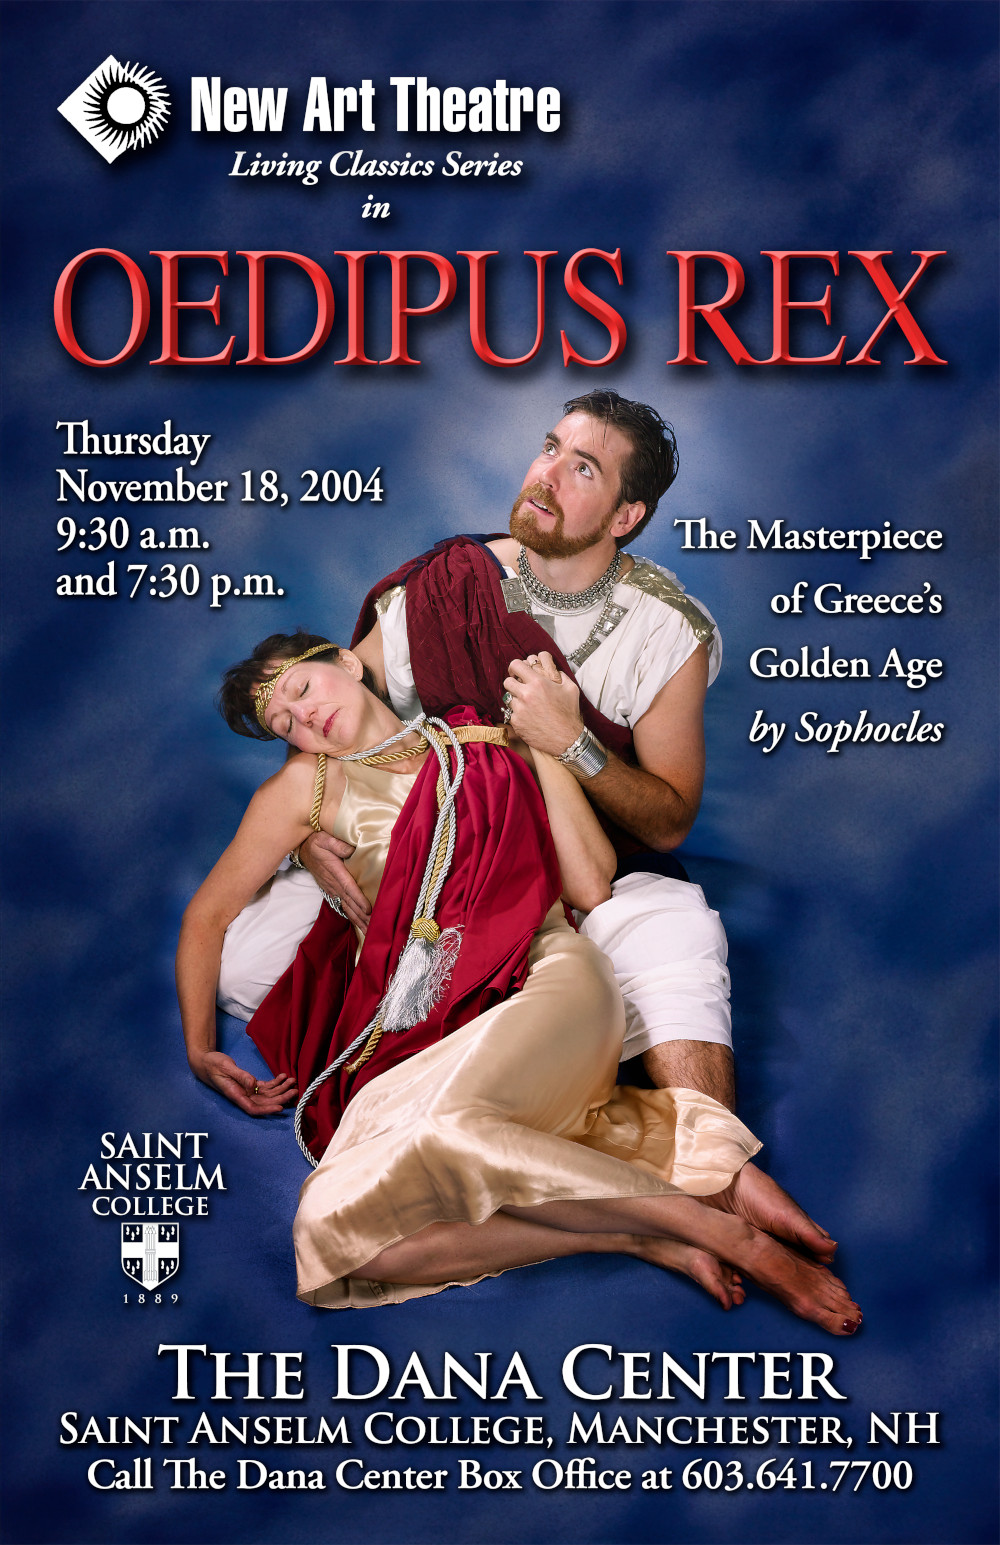 Poster for Oedipus Rex, 2004